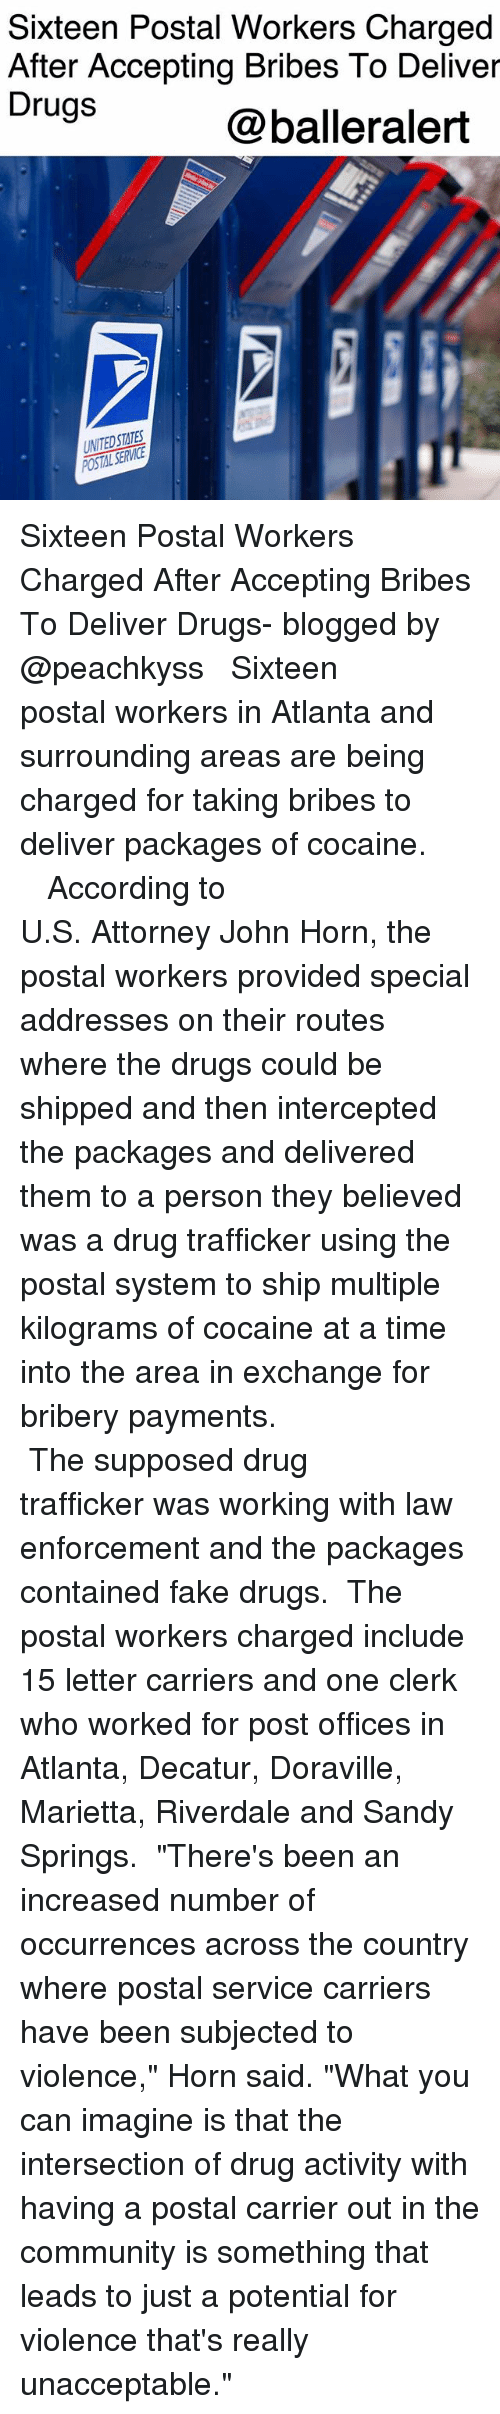 "Community, Drugs, and Fake: Sixteen Postal Workers Charged  After Accepting Bribes To Deliver  Drugs  @balleralert  UNITEDSTATES Sixteen Postal Workers Charged After Accepting Bribes To Deliver Drugs- blogged by @peachkyss ⠀⠀⠀⠀⠀⠀⠀ ⠀⠀⠀⠀⠀⠀⠀ Sixteen postal workers in Atlanta and surrounding areas are being charged for taking bribes to deliver packages of cocaine. ⠀⠀⠀⠀⠀⠀⠀ ⠀⠀⠀⠀⠀⠀⠀ ⠀⠀⠀⠀⠀⠀⠀ According to U.S. Attorney John Horn, the postal workers provided special addresses on their routes where the drugs could be shipped and then intercepted the packages and delivered them to a person they believed was a drug trafficker using the postal system to ship multiple kilograms of cocaine at a time into the area in exchange for bribery payments. ⠀⠀⠀⠀⠀⠀⠀ ⠀⠀⠀⠀⠀⠀⠀ ⠀⠀⠀⠀⠀⠀⠀ The supposed drug trafficker was working with law enforcement and the packages contained fake drugs. ⠀⠀⠀⠀⠀⠀⠀ The postal workers charged include 15 letter carriers and one clerk who worked for post offices in Atlanta, Decatur, Doraville, Marietta, Riverdale and Sandy Springs. ⠀⠀⠀⠀⠀⠀⠀ ""There's been an increased number of occurrences across the country where postal service carriers have been subjected to violence,"" Horn said. ""What you can imagine is that the intersection of drug activity with having a postal carrier out in the community is something that leads to just a potential for violence that's really unacceptable."""